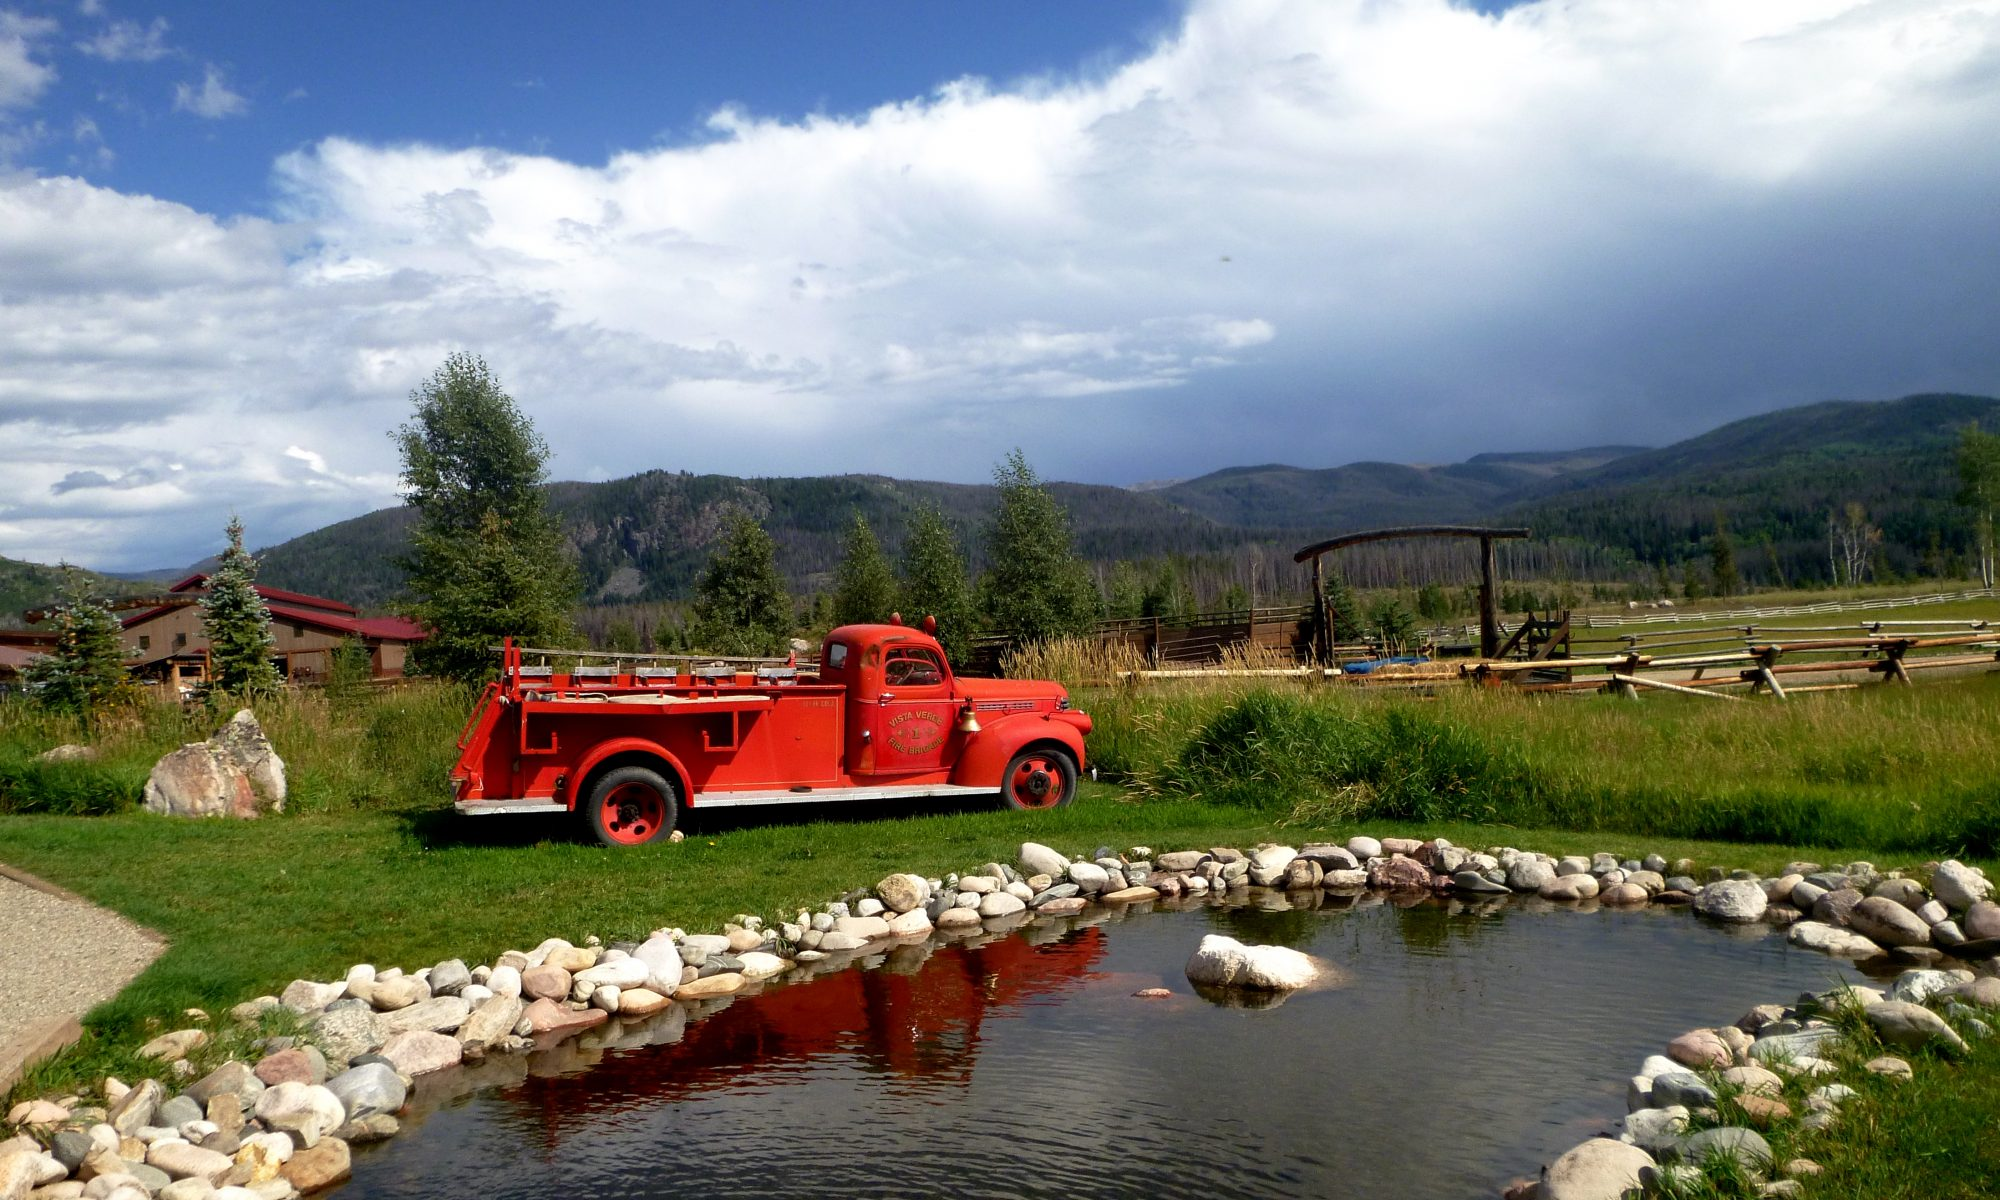 Old fire truck in front of pond